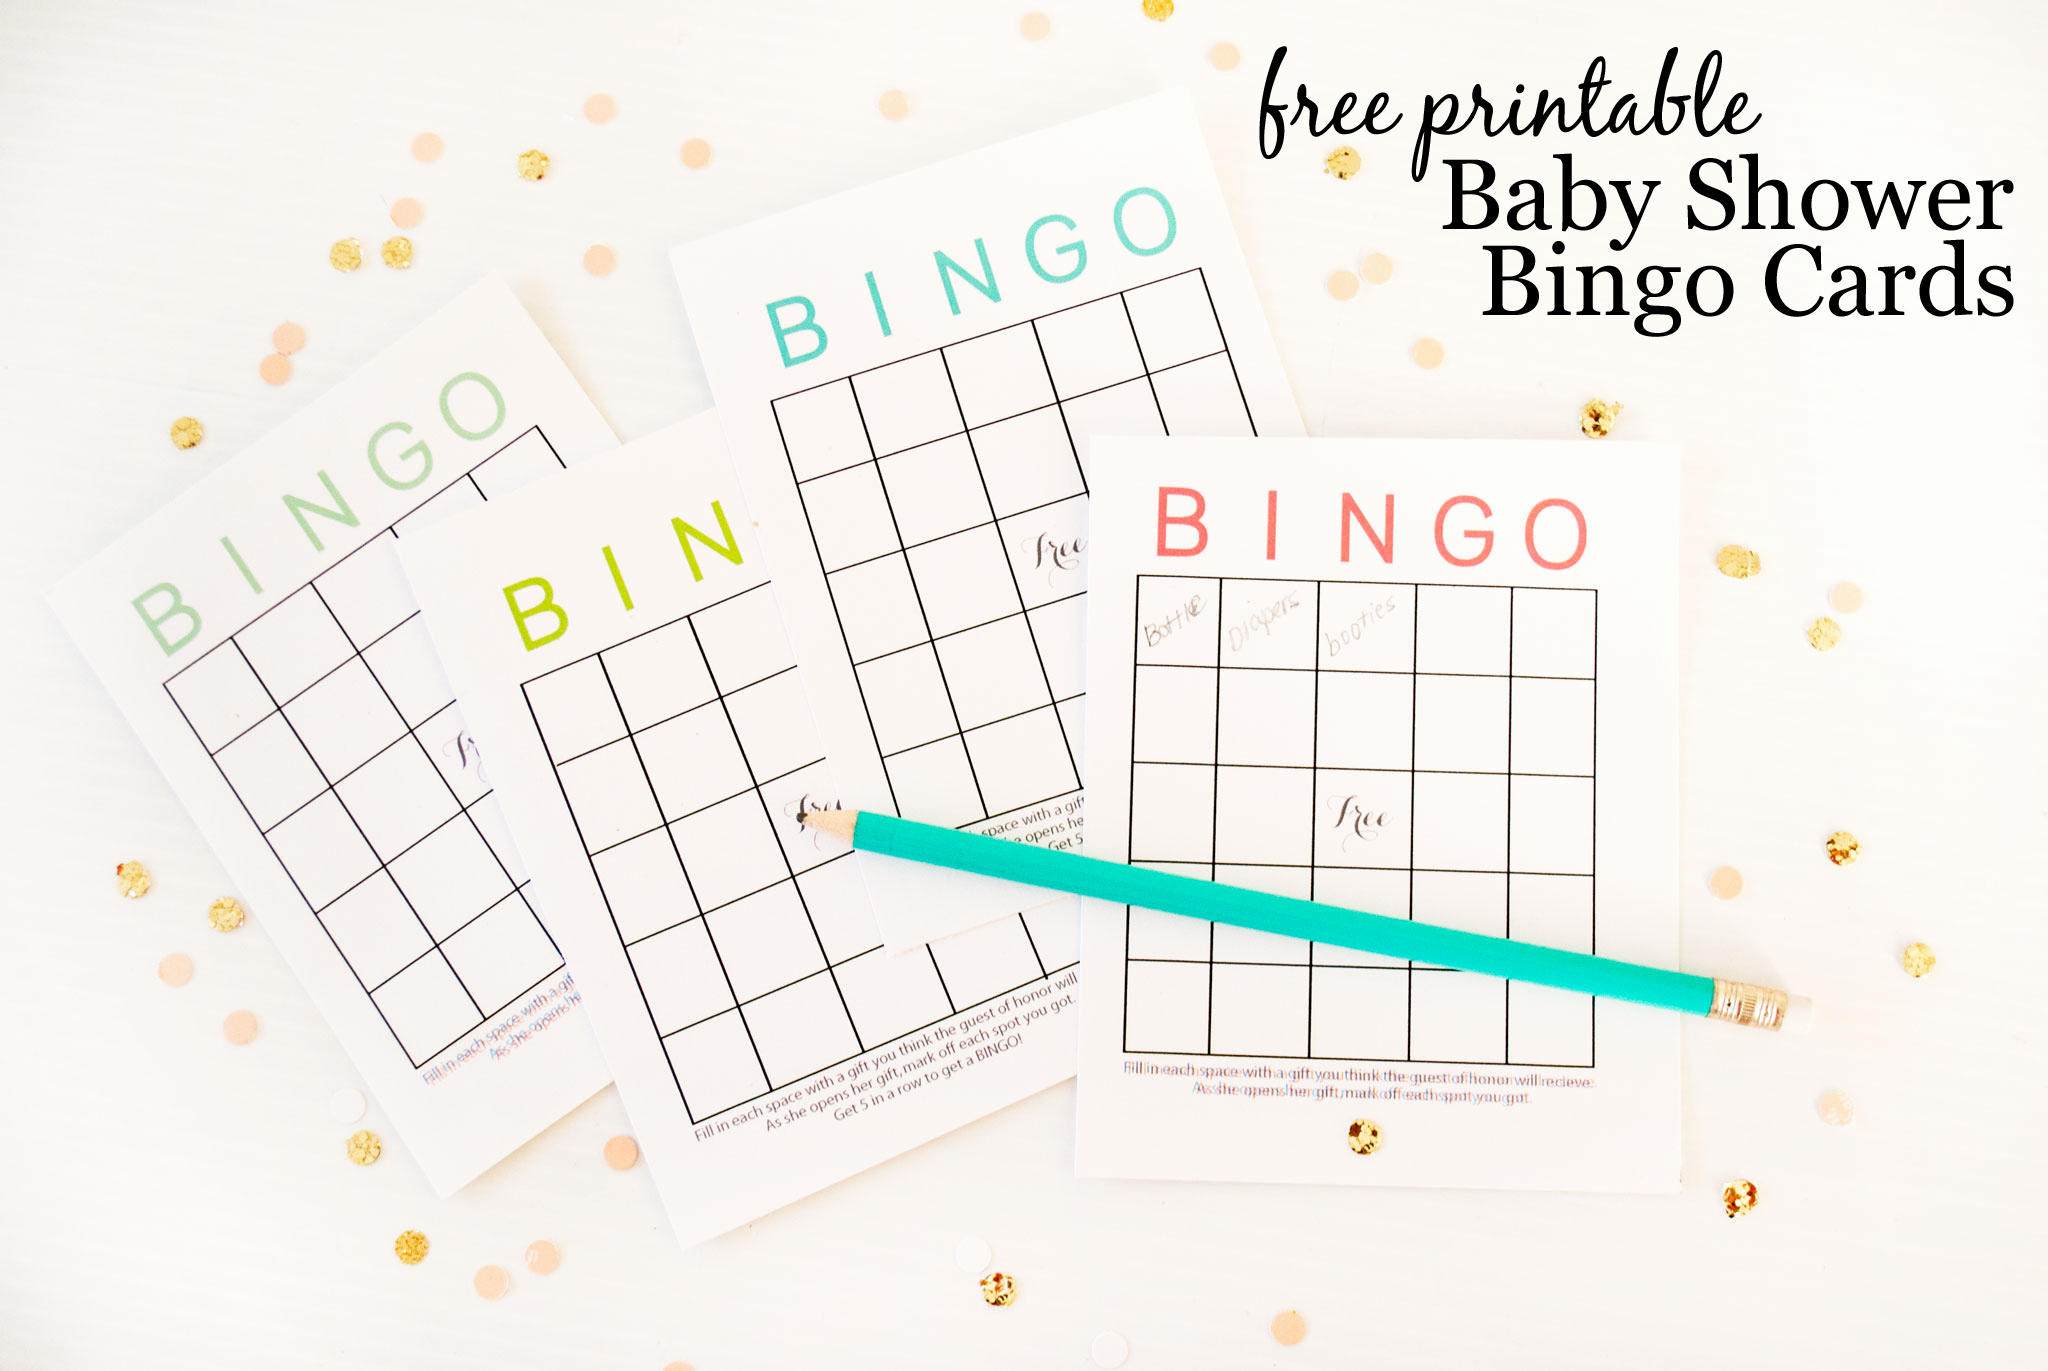 Baby Shower Card Printable Elegant Free Printable Baby Shower Bingo Cards Project Nursery